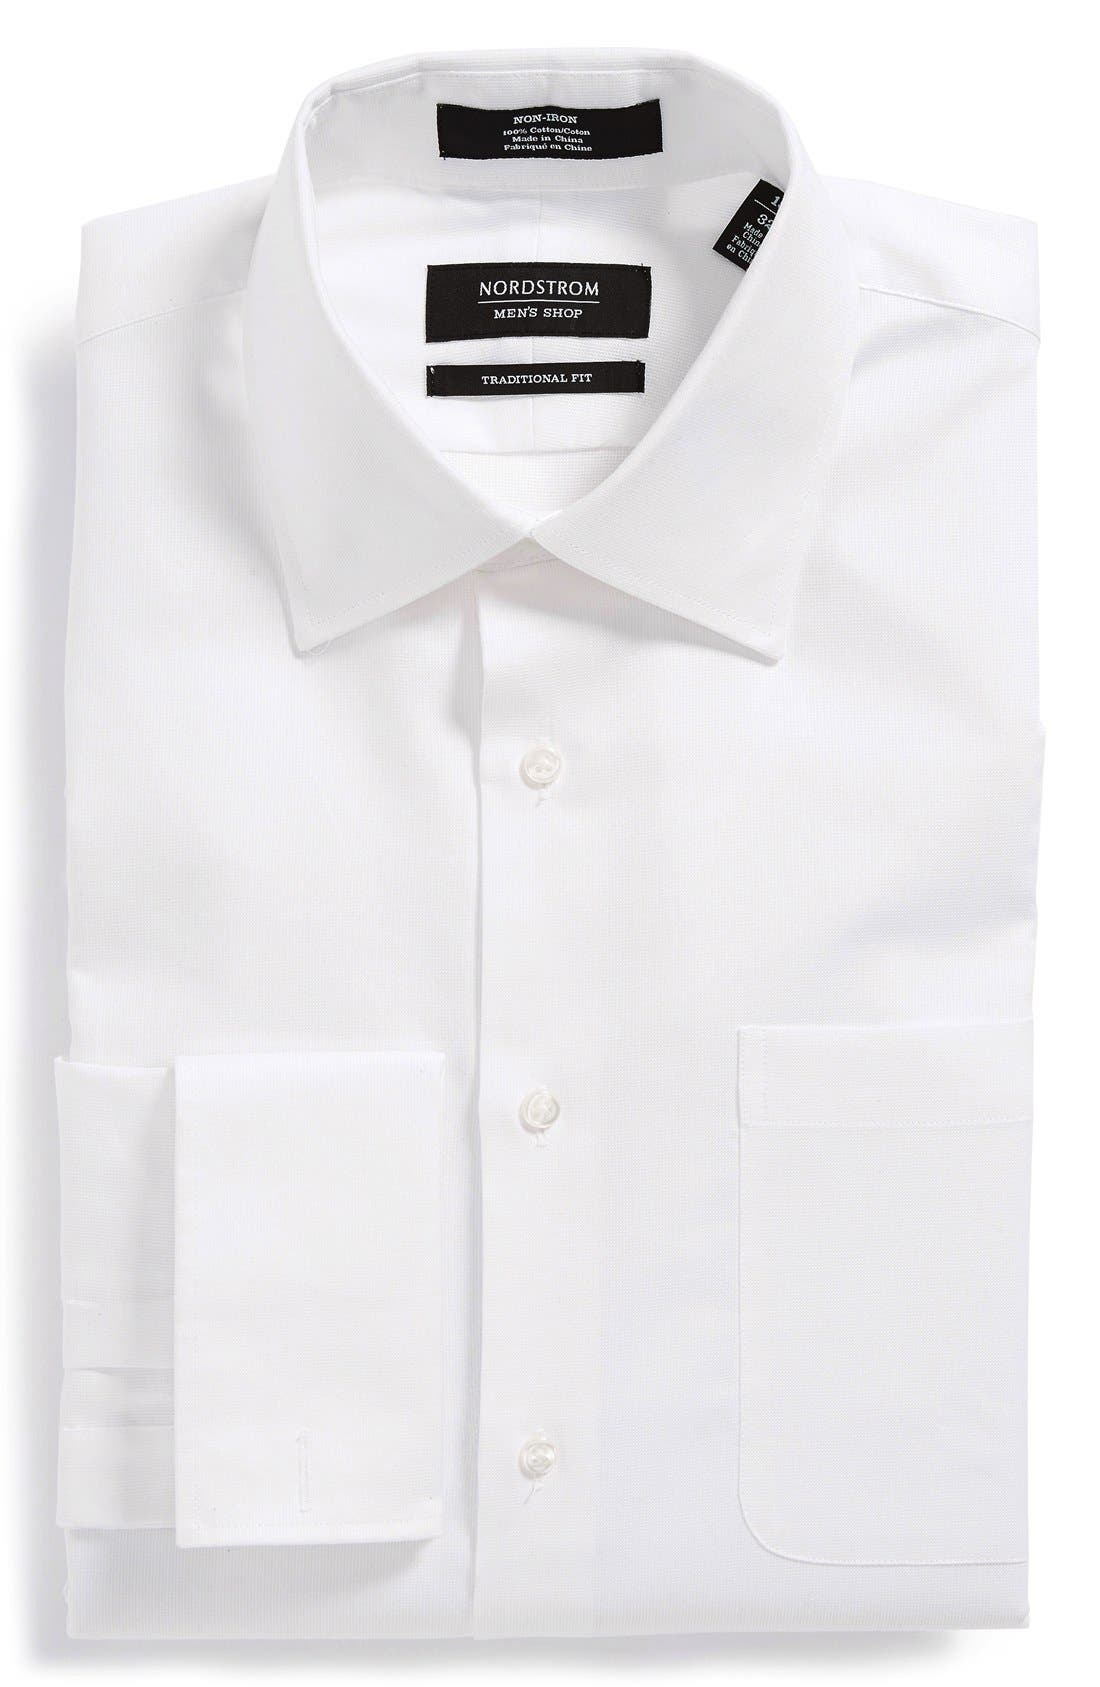 Nordstrom Traditional Fit Non-Iron Dress Shirt,                             Main thumbnail 1, color,                             100